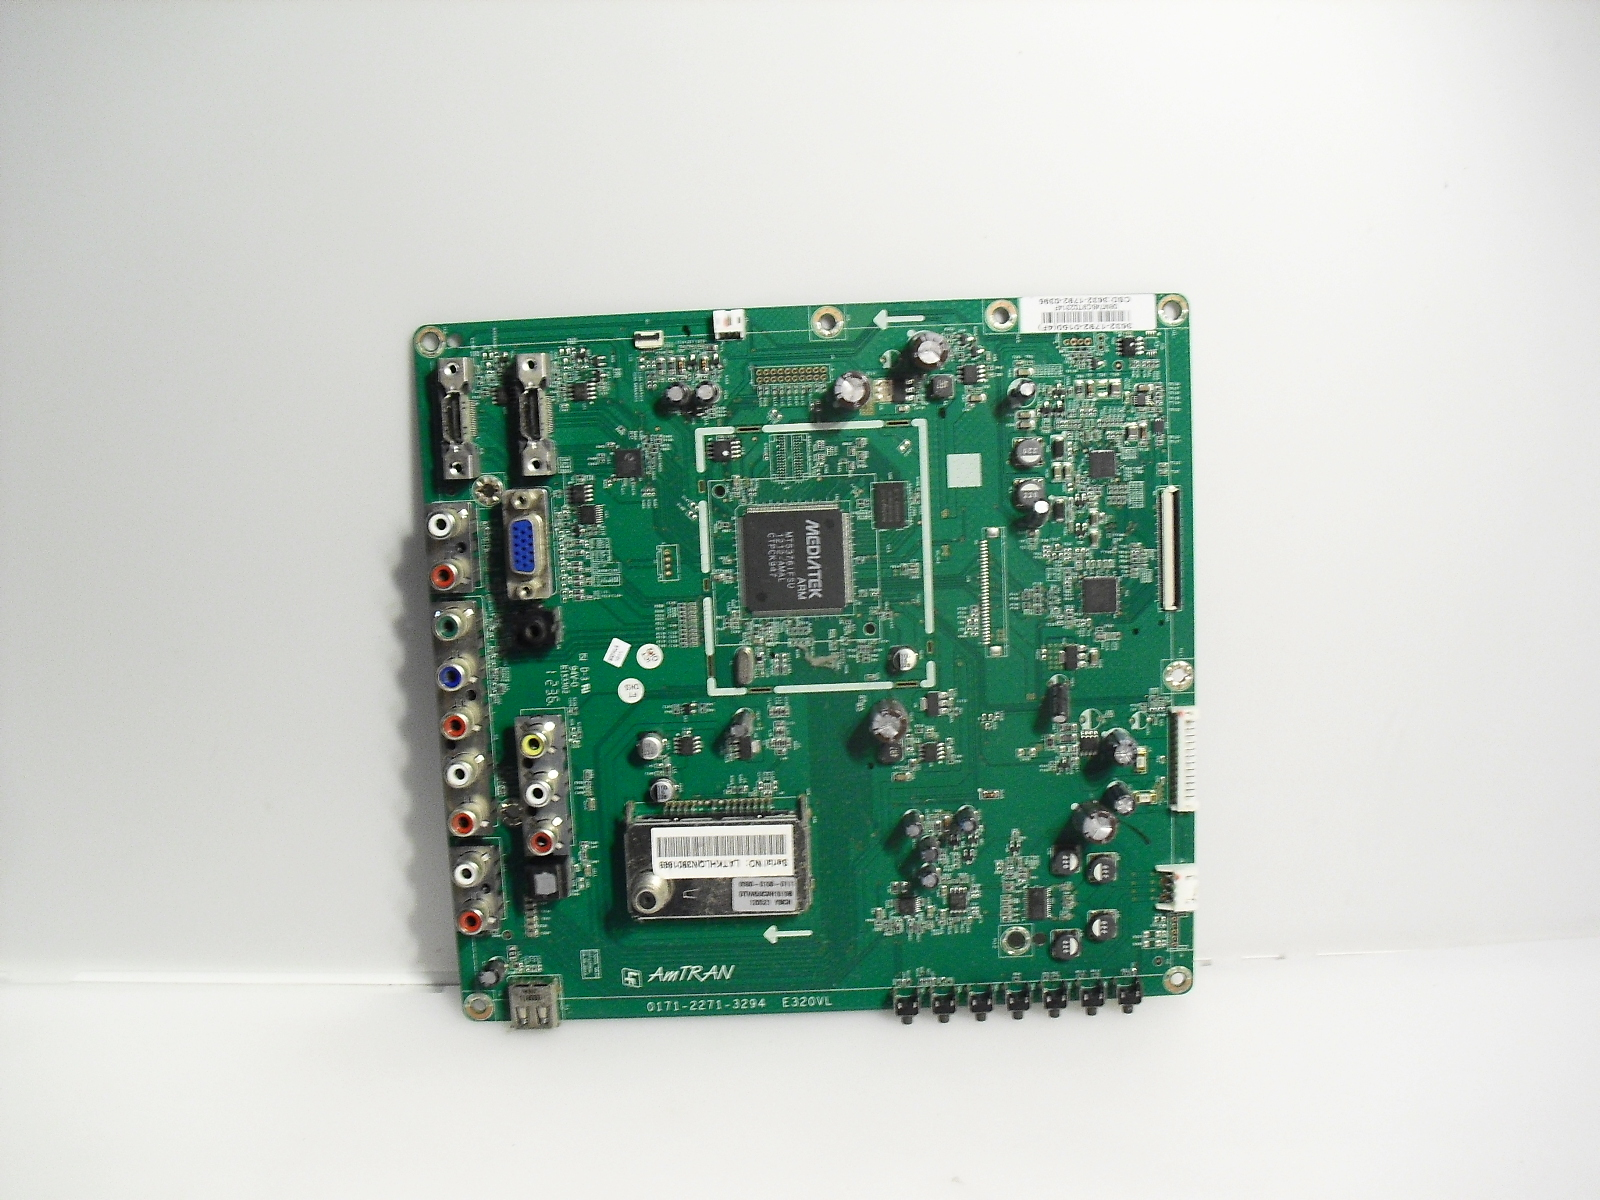 Primary image for 0171-2271-3294    main  board  for   vizio  e321vL